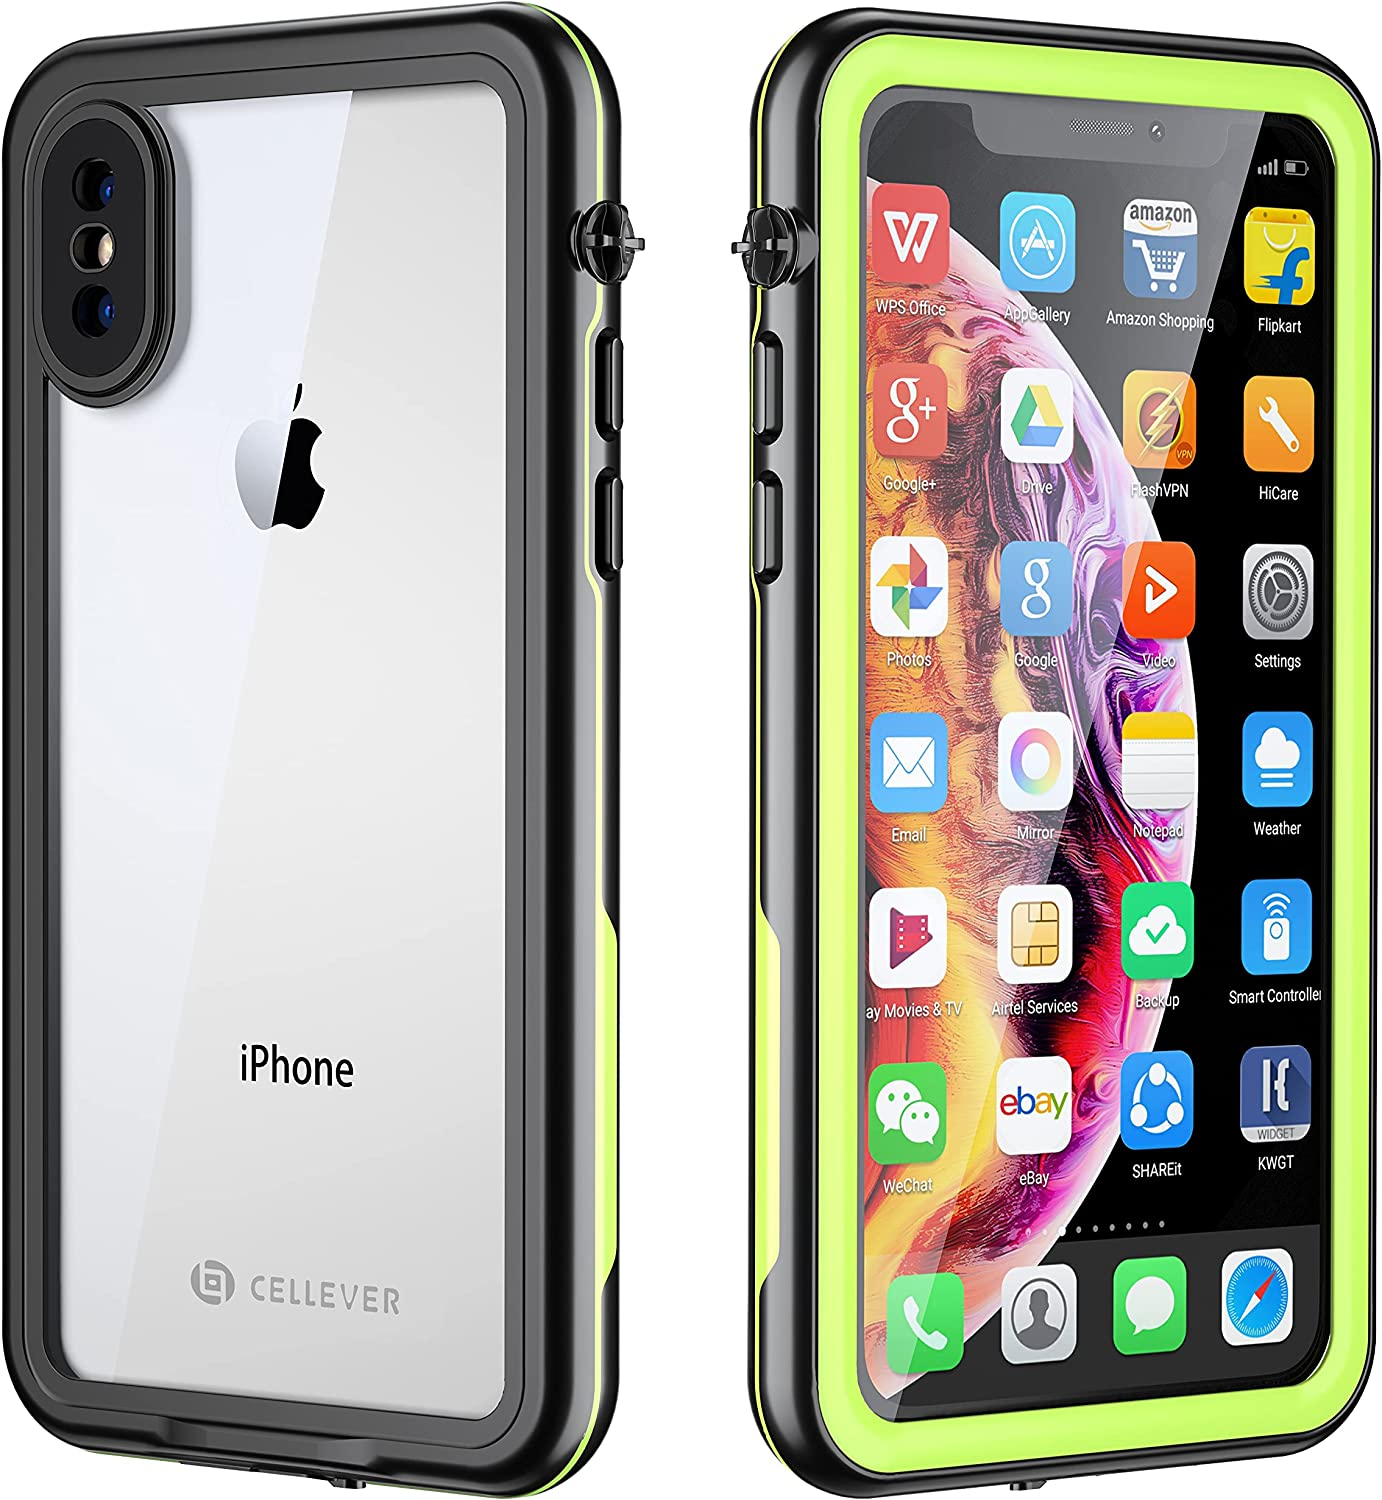 CellEver Compatible with iPhone Xs/iPhone X Waterproof Case Fully Sealed Clear Slim Military Grade Protection IP68 Certified SandProof Snowproof Full Body Protective Transparent Cover (Lime Green)